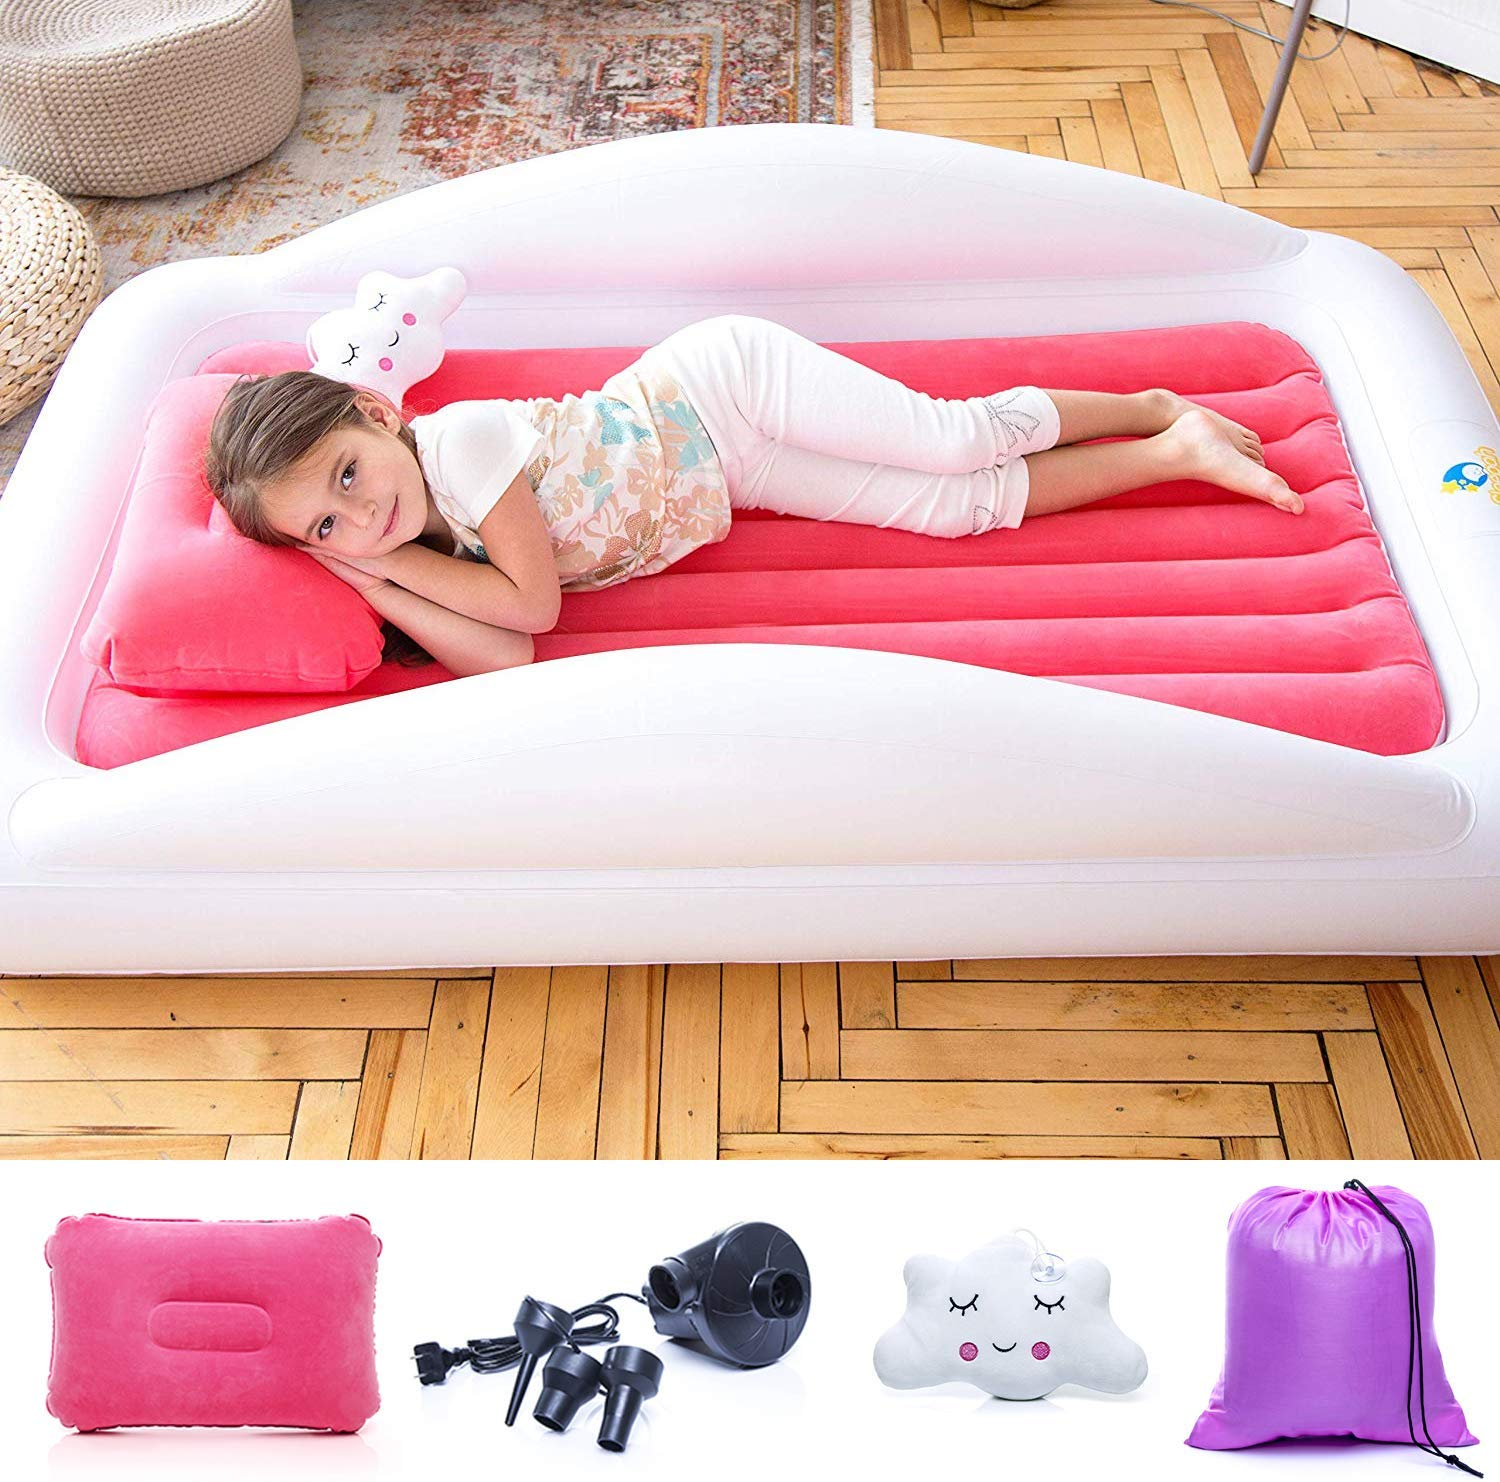 Sleepah Inflatable Blow up Mattress